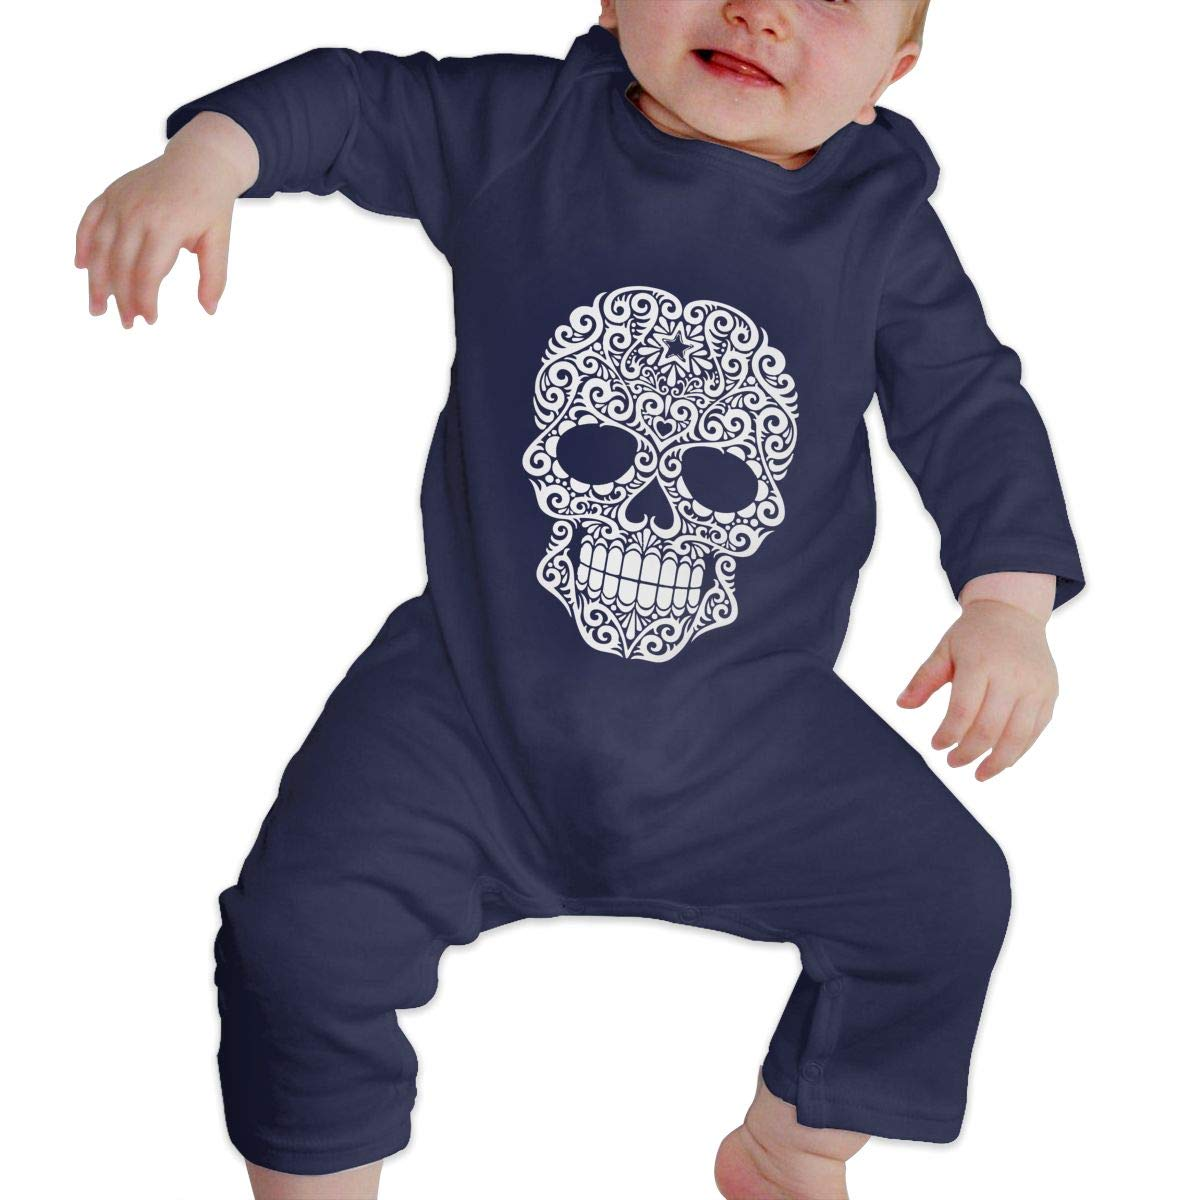 Suit 6-24 Months Baby Boys Round Collar White Swirling Sugar Skull Long Sleeve Playsuit 100/% Cotton